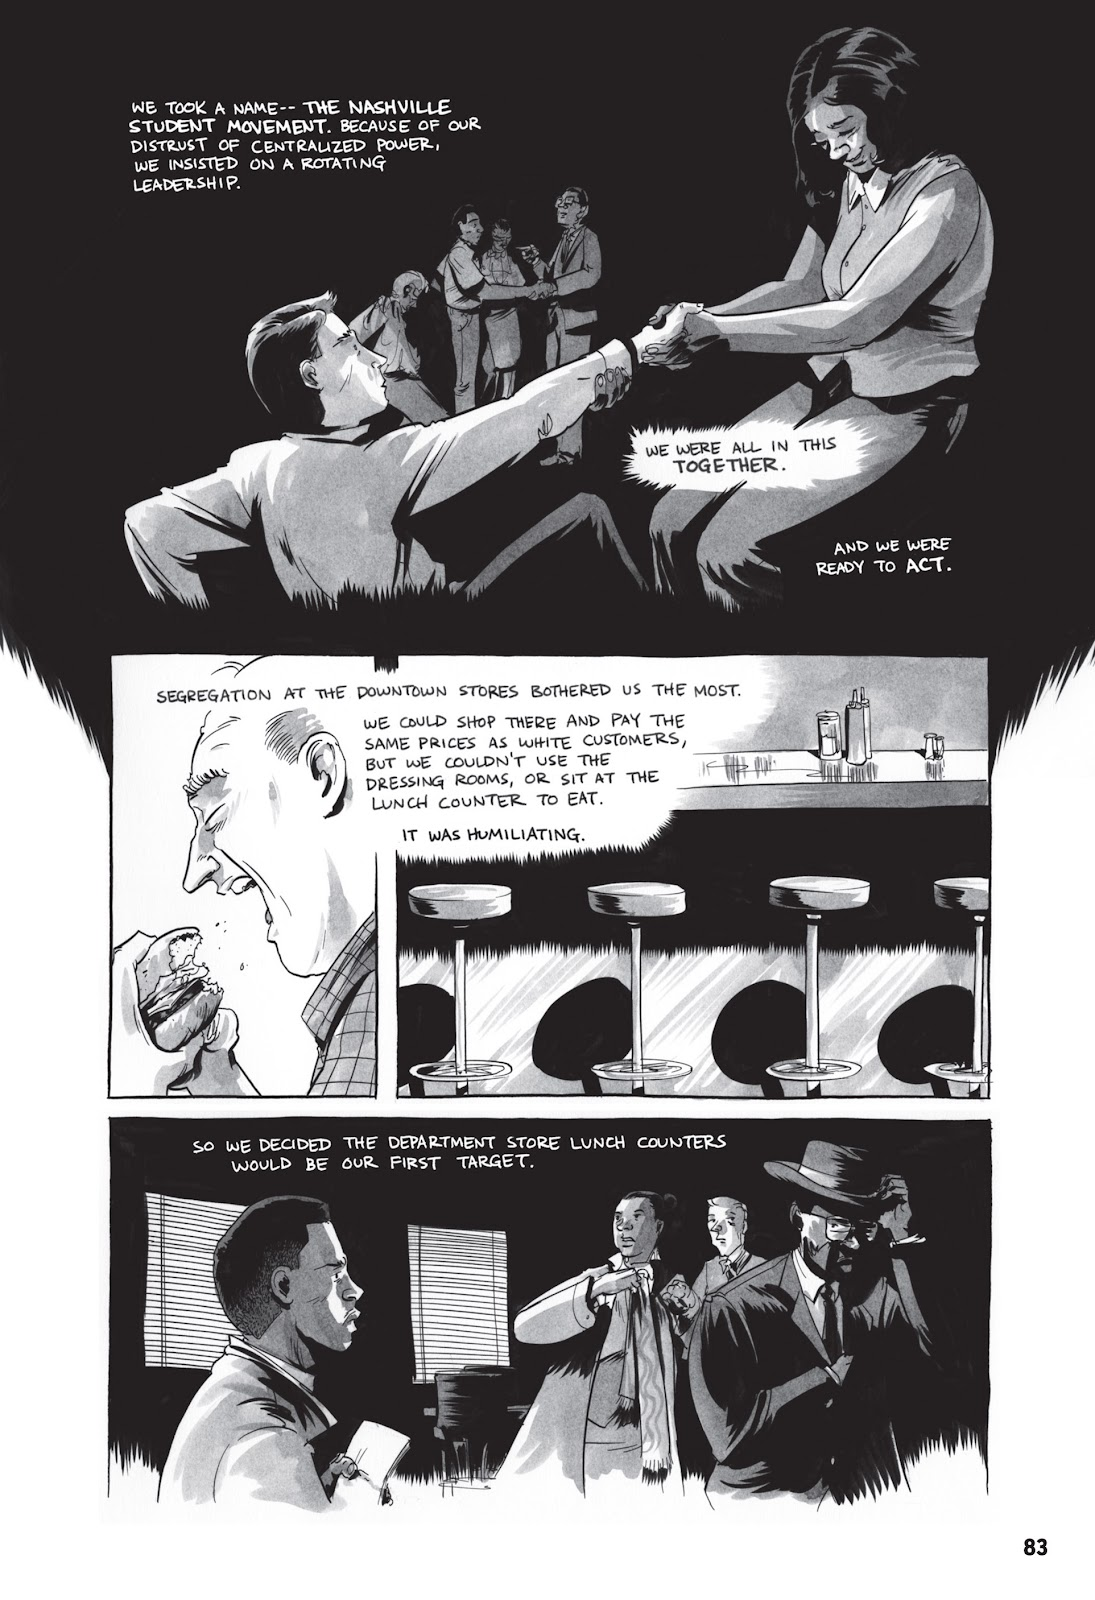 March 1 Page 80